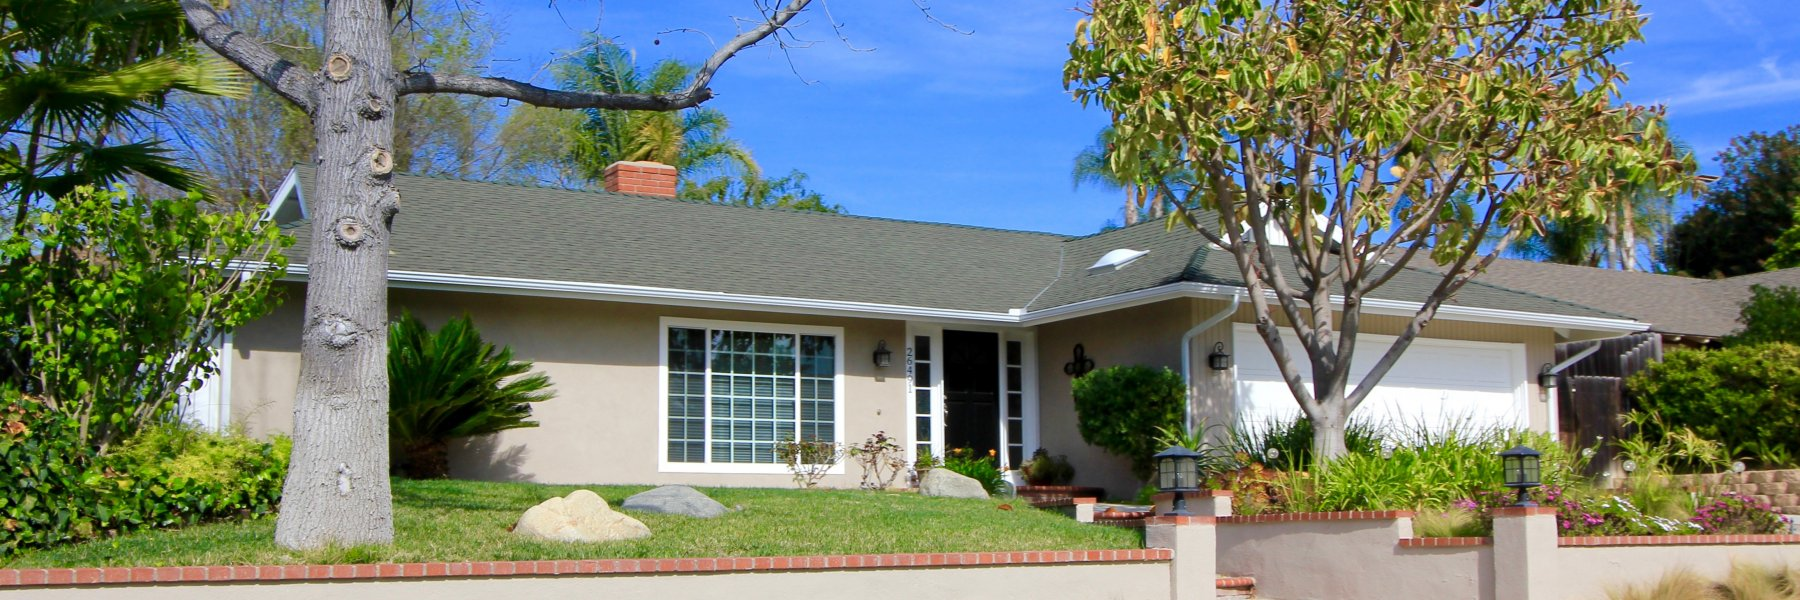 Deane is a community of homes in Mission Viejo California